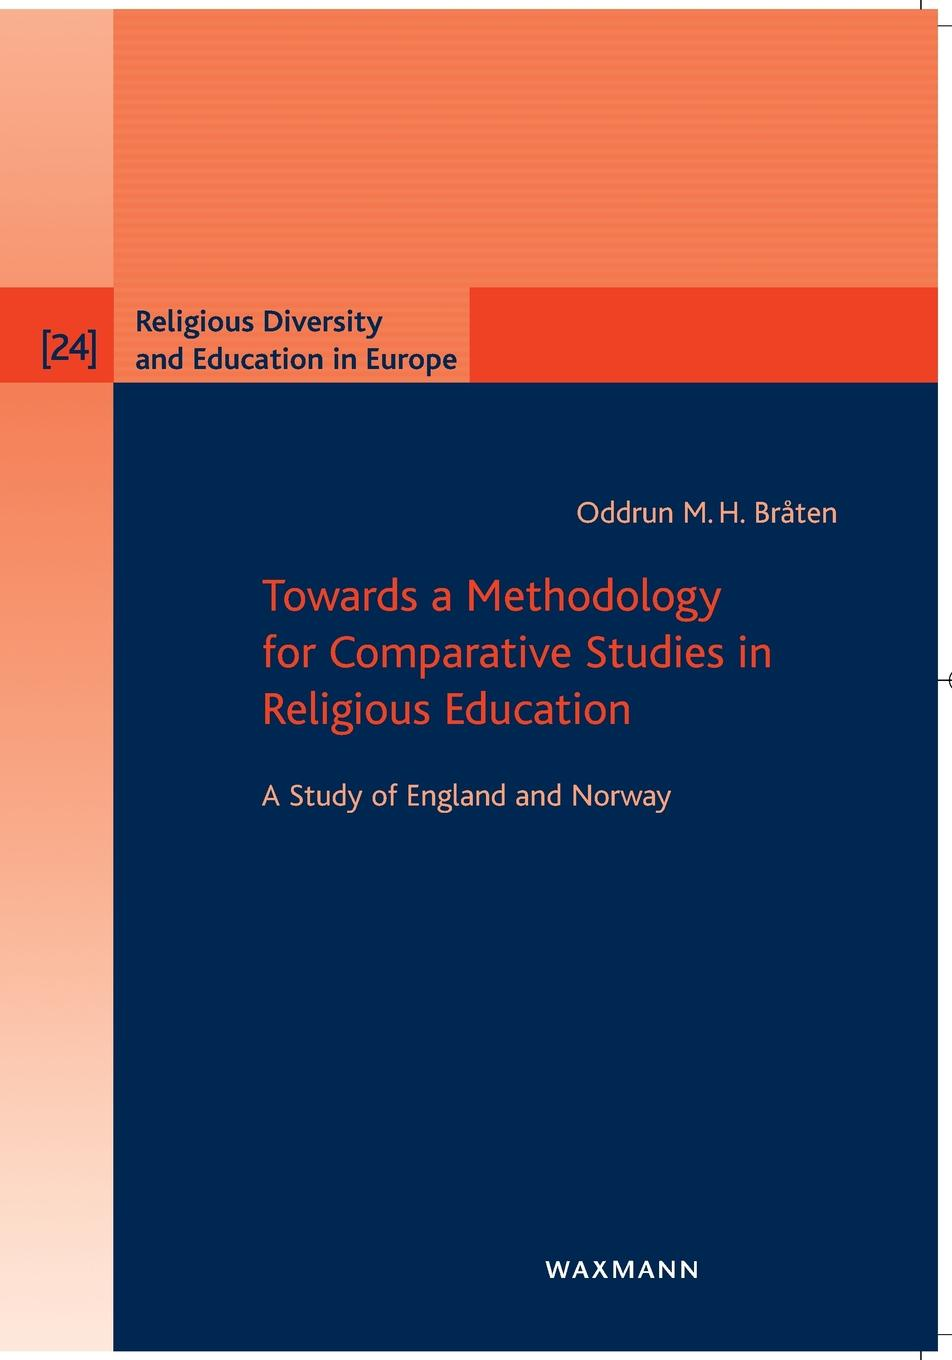 Oddrun M. H. Bråten Towards a Methodology for Comparative Studies in Religious Education retroversion in religious processes